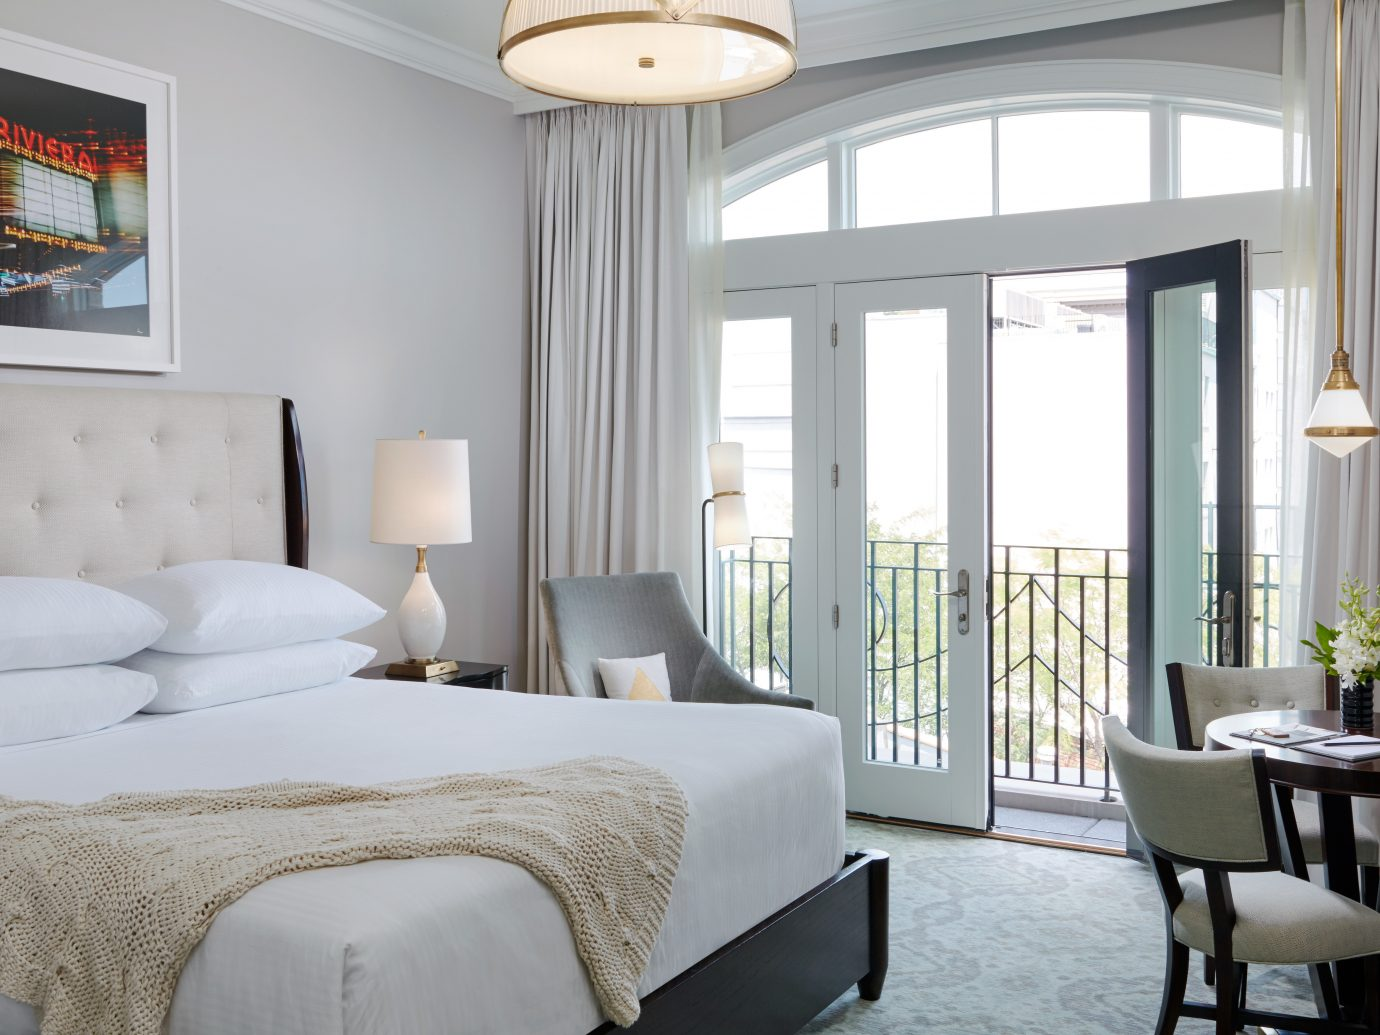 Bedroom Elegant Hotels Modern Romance Scenic views Suite Trip Ideas indoor sofa room window floor wall bed hotel chair property living room home furniture Living interior design ceiling estate hardwood window covering Design real estate farmhouse cottage dining room nice decorated several containing